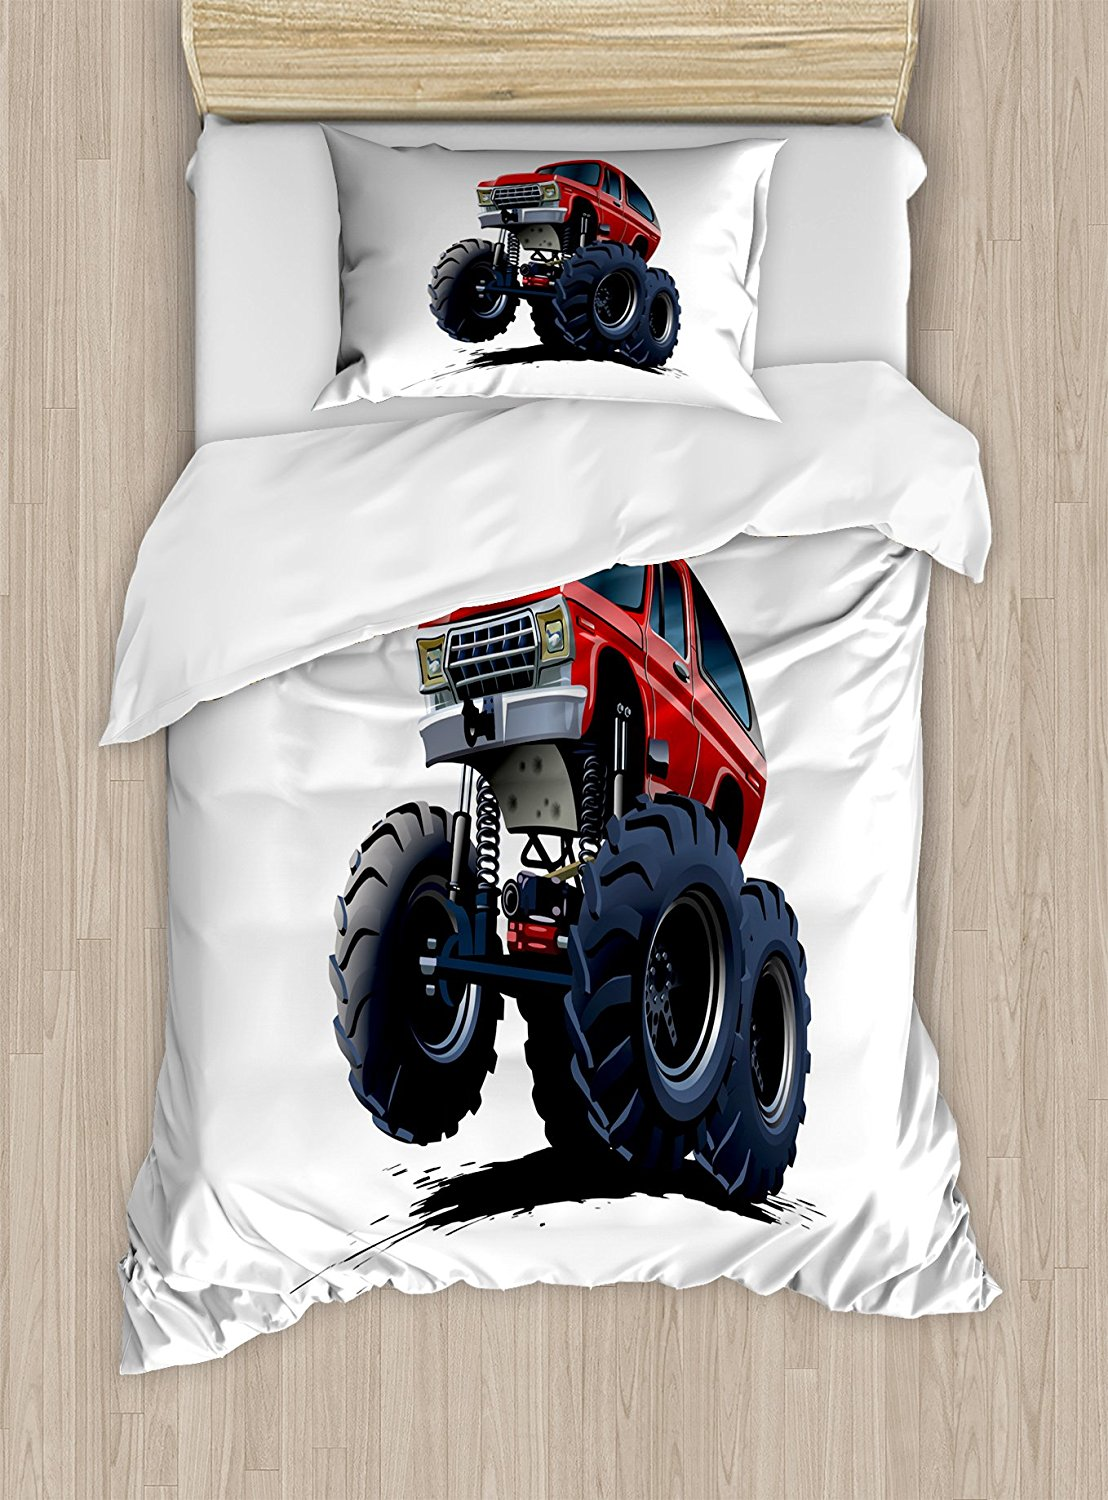 Truck Duvet Cover Set Extreme Off Road Vehicle Cartoon